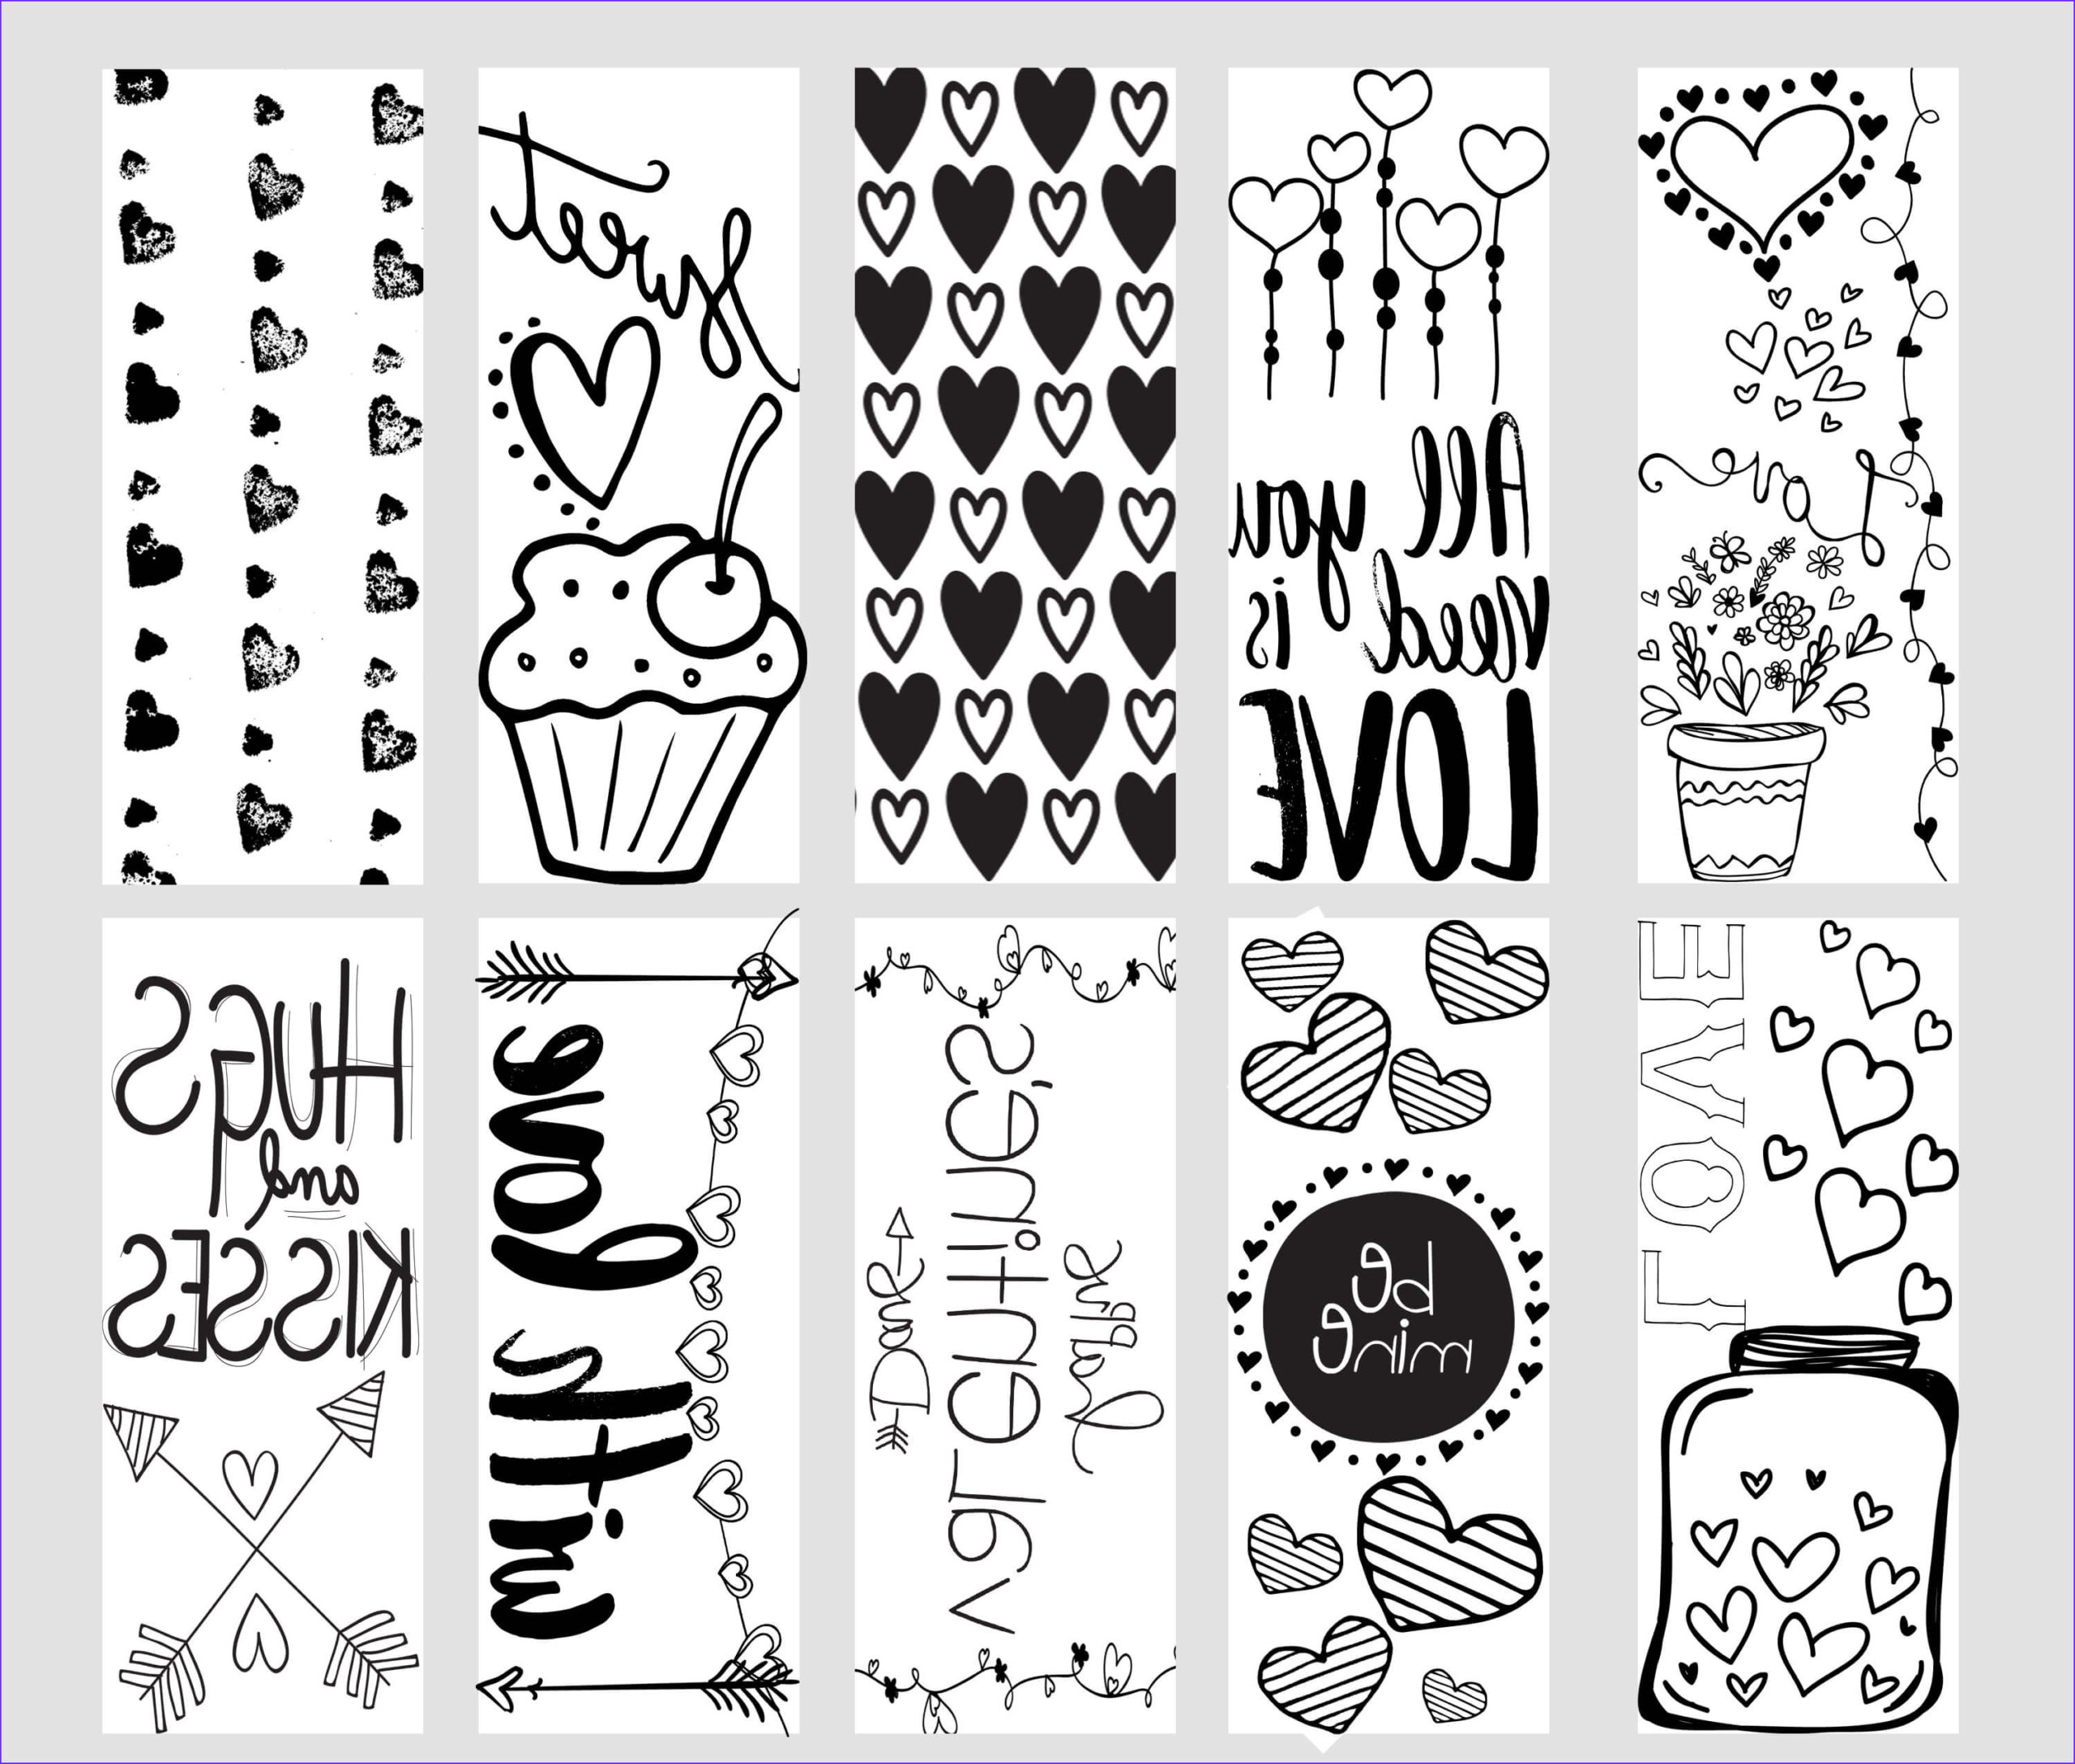 Free Coloring Bookmarks Awesome Photos Valentine Printable Coloring Page Bookmarks Kleinworth & Co